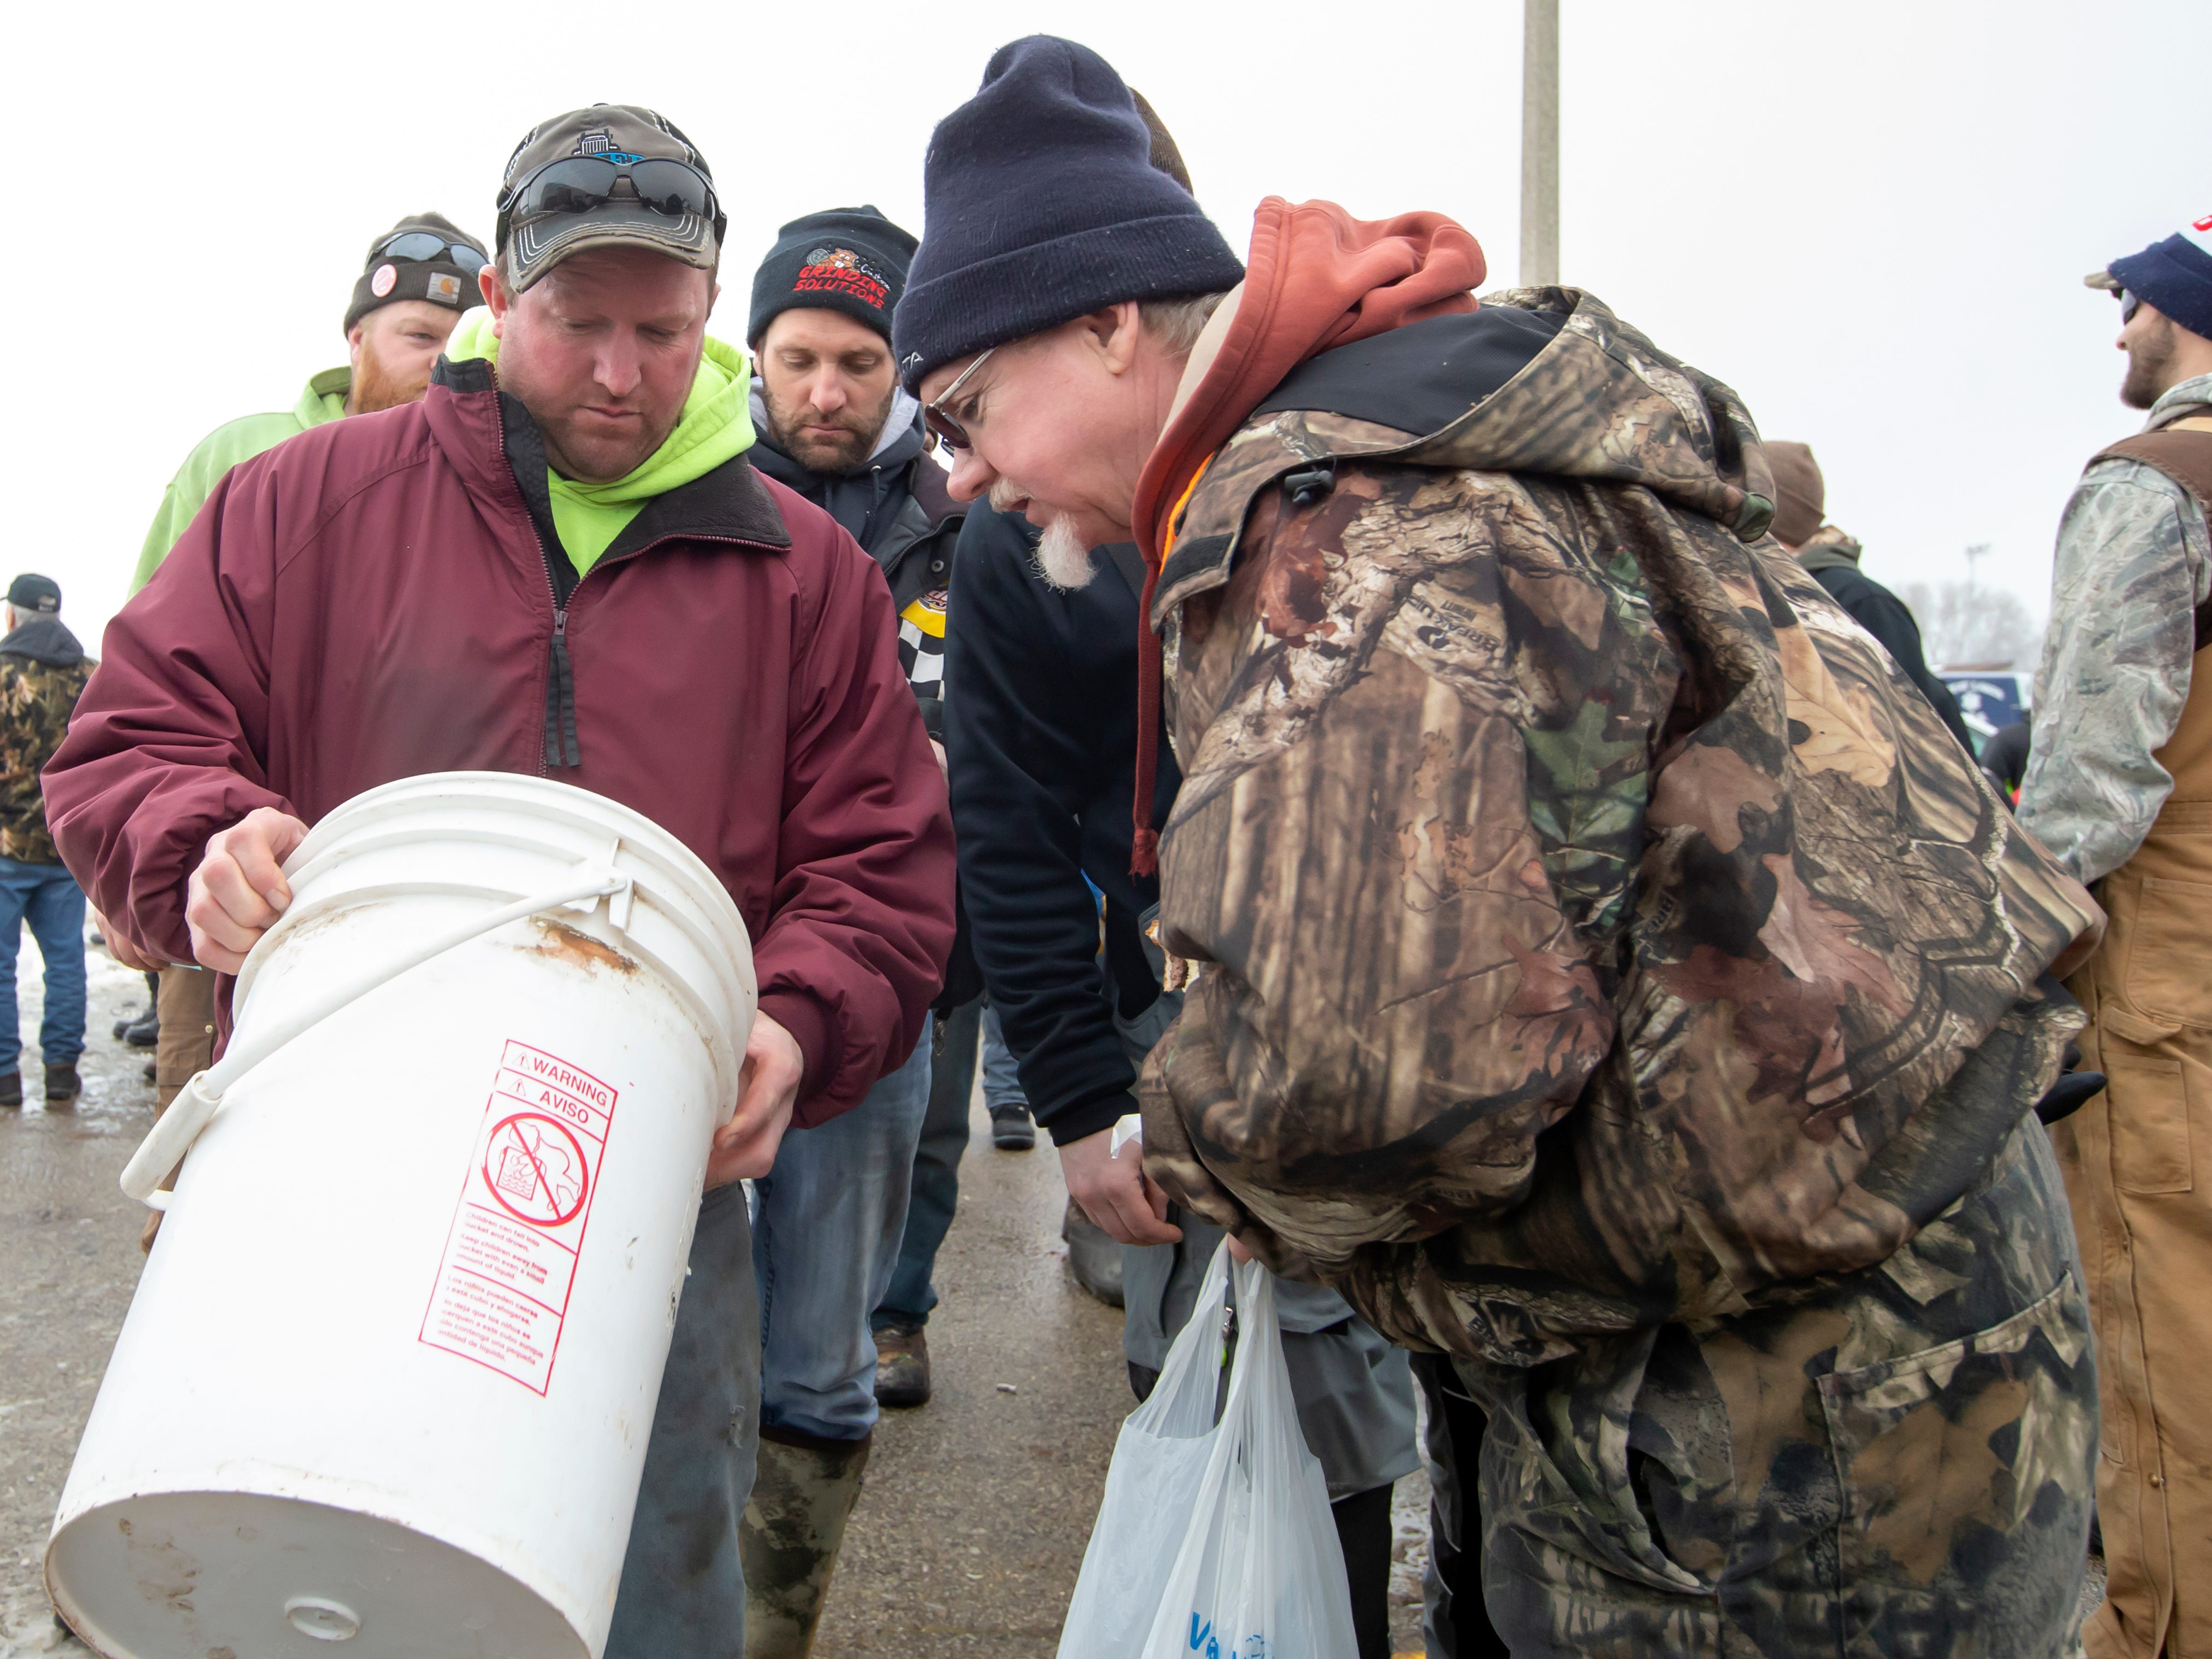 Mark Ecker shows an onlooker his white bass and perch catch waiting in the weigh-in line during the Otter Street Fishing Club Winter Fisheree at Miller's Bay in Menominee Park on Saturday, Feb. 2, 2019.